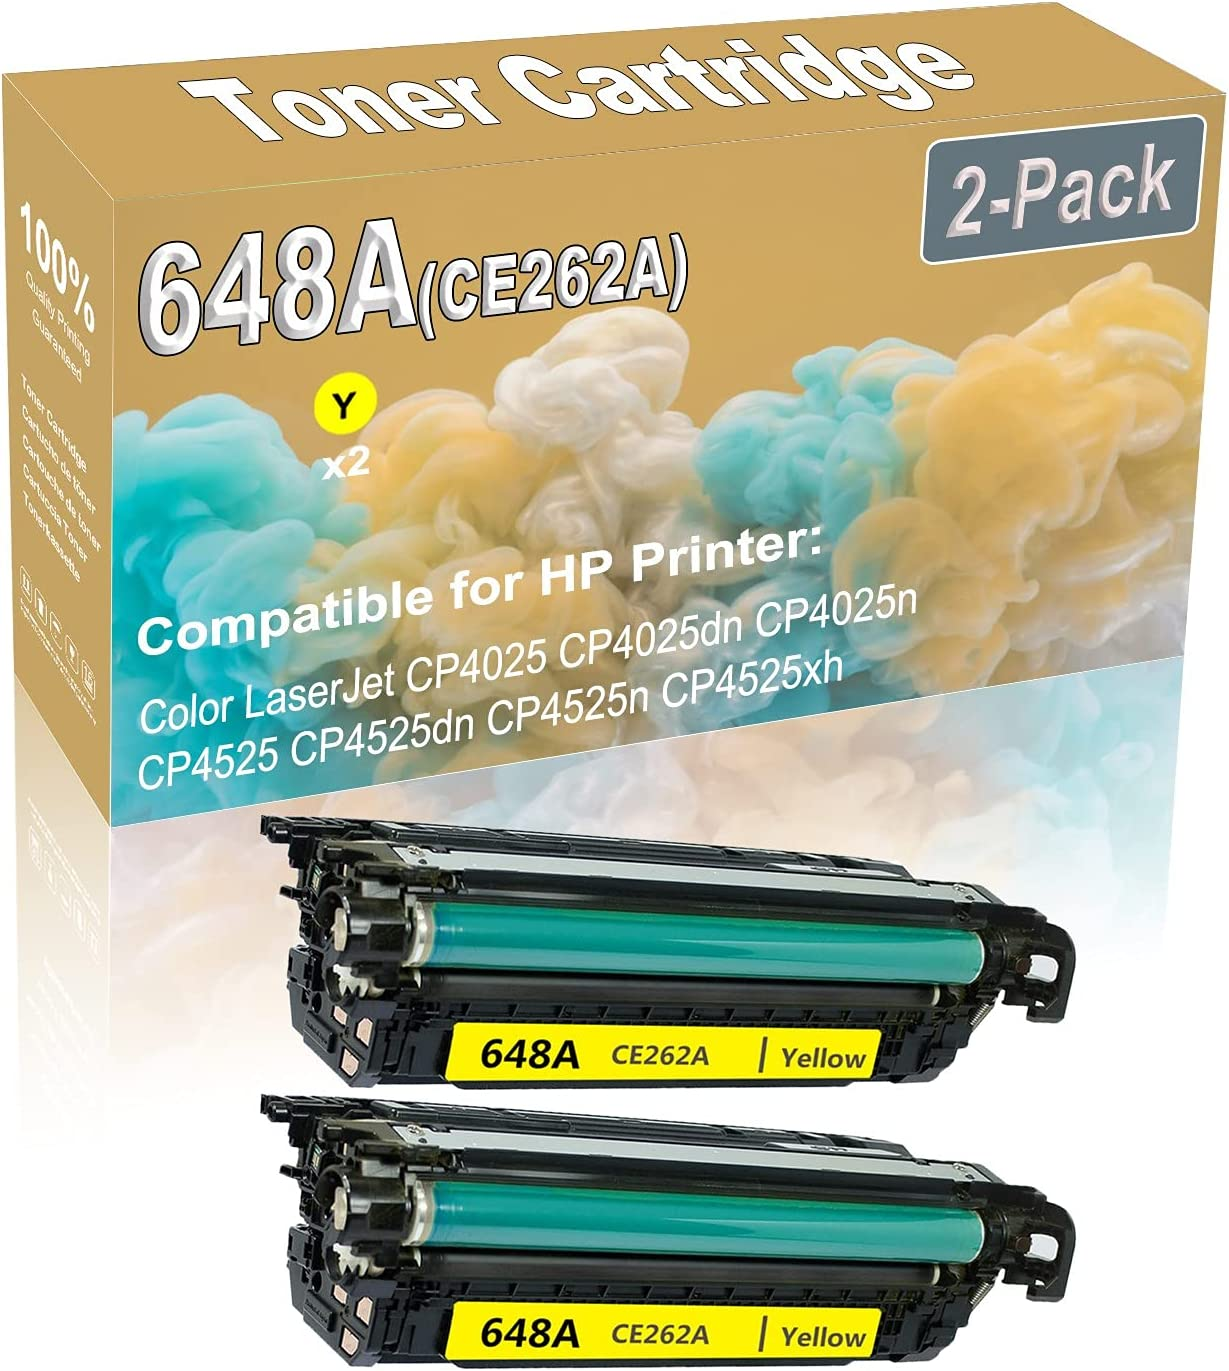 2-Pack (Yellow) Compatible High Yield 648A (CE262A) Printer Toner Cartridge use for HP CP4025 CP4025dn Printers